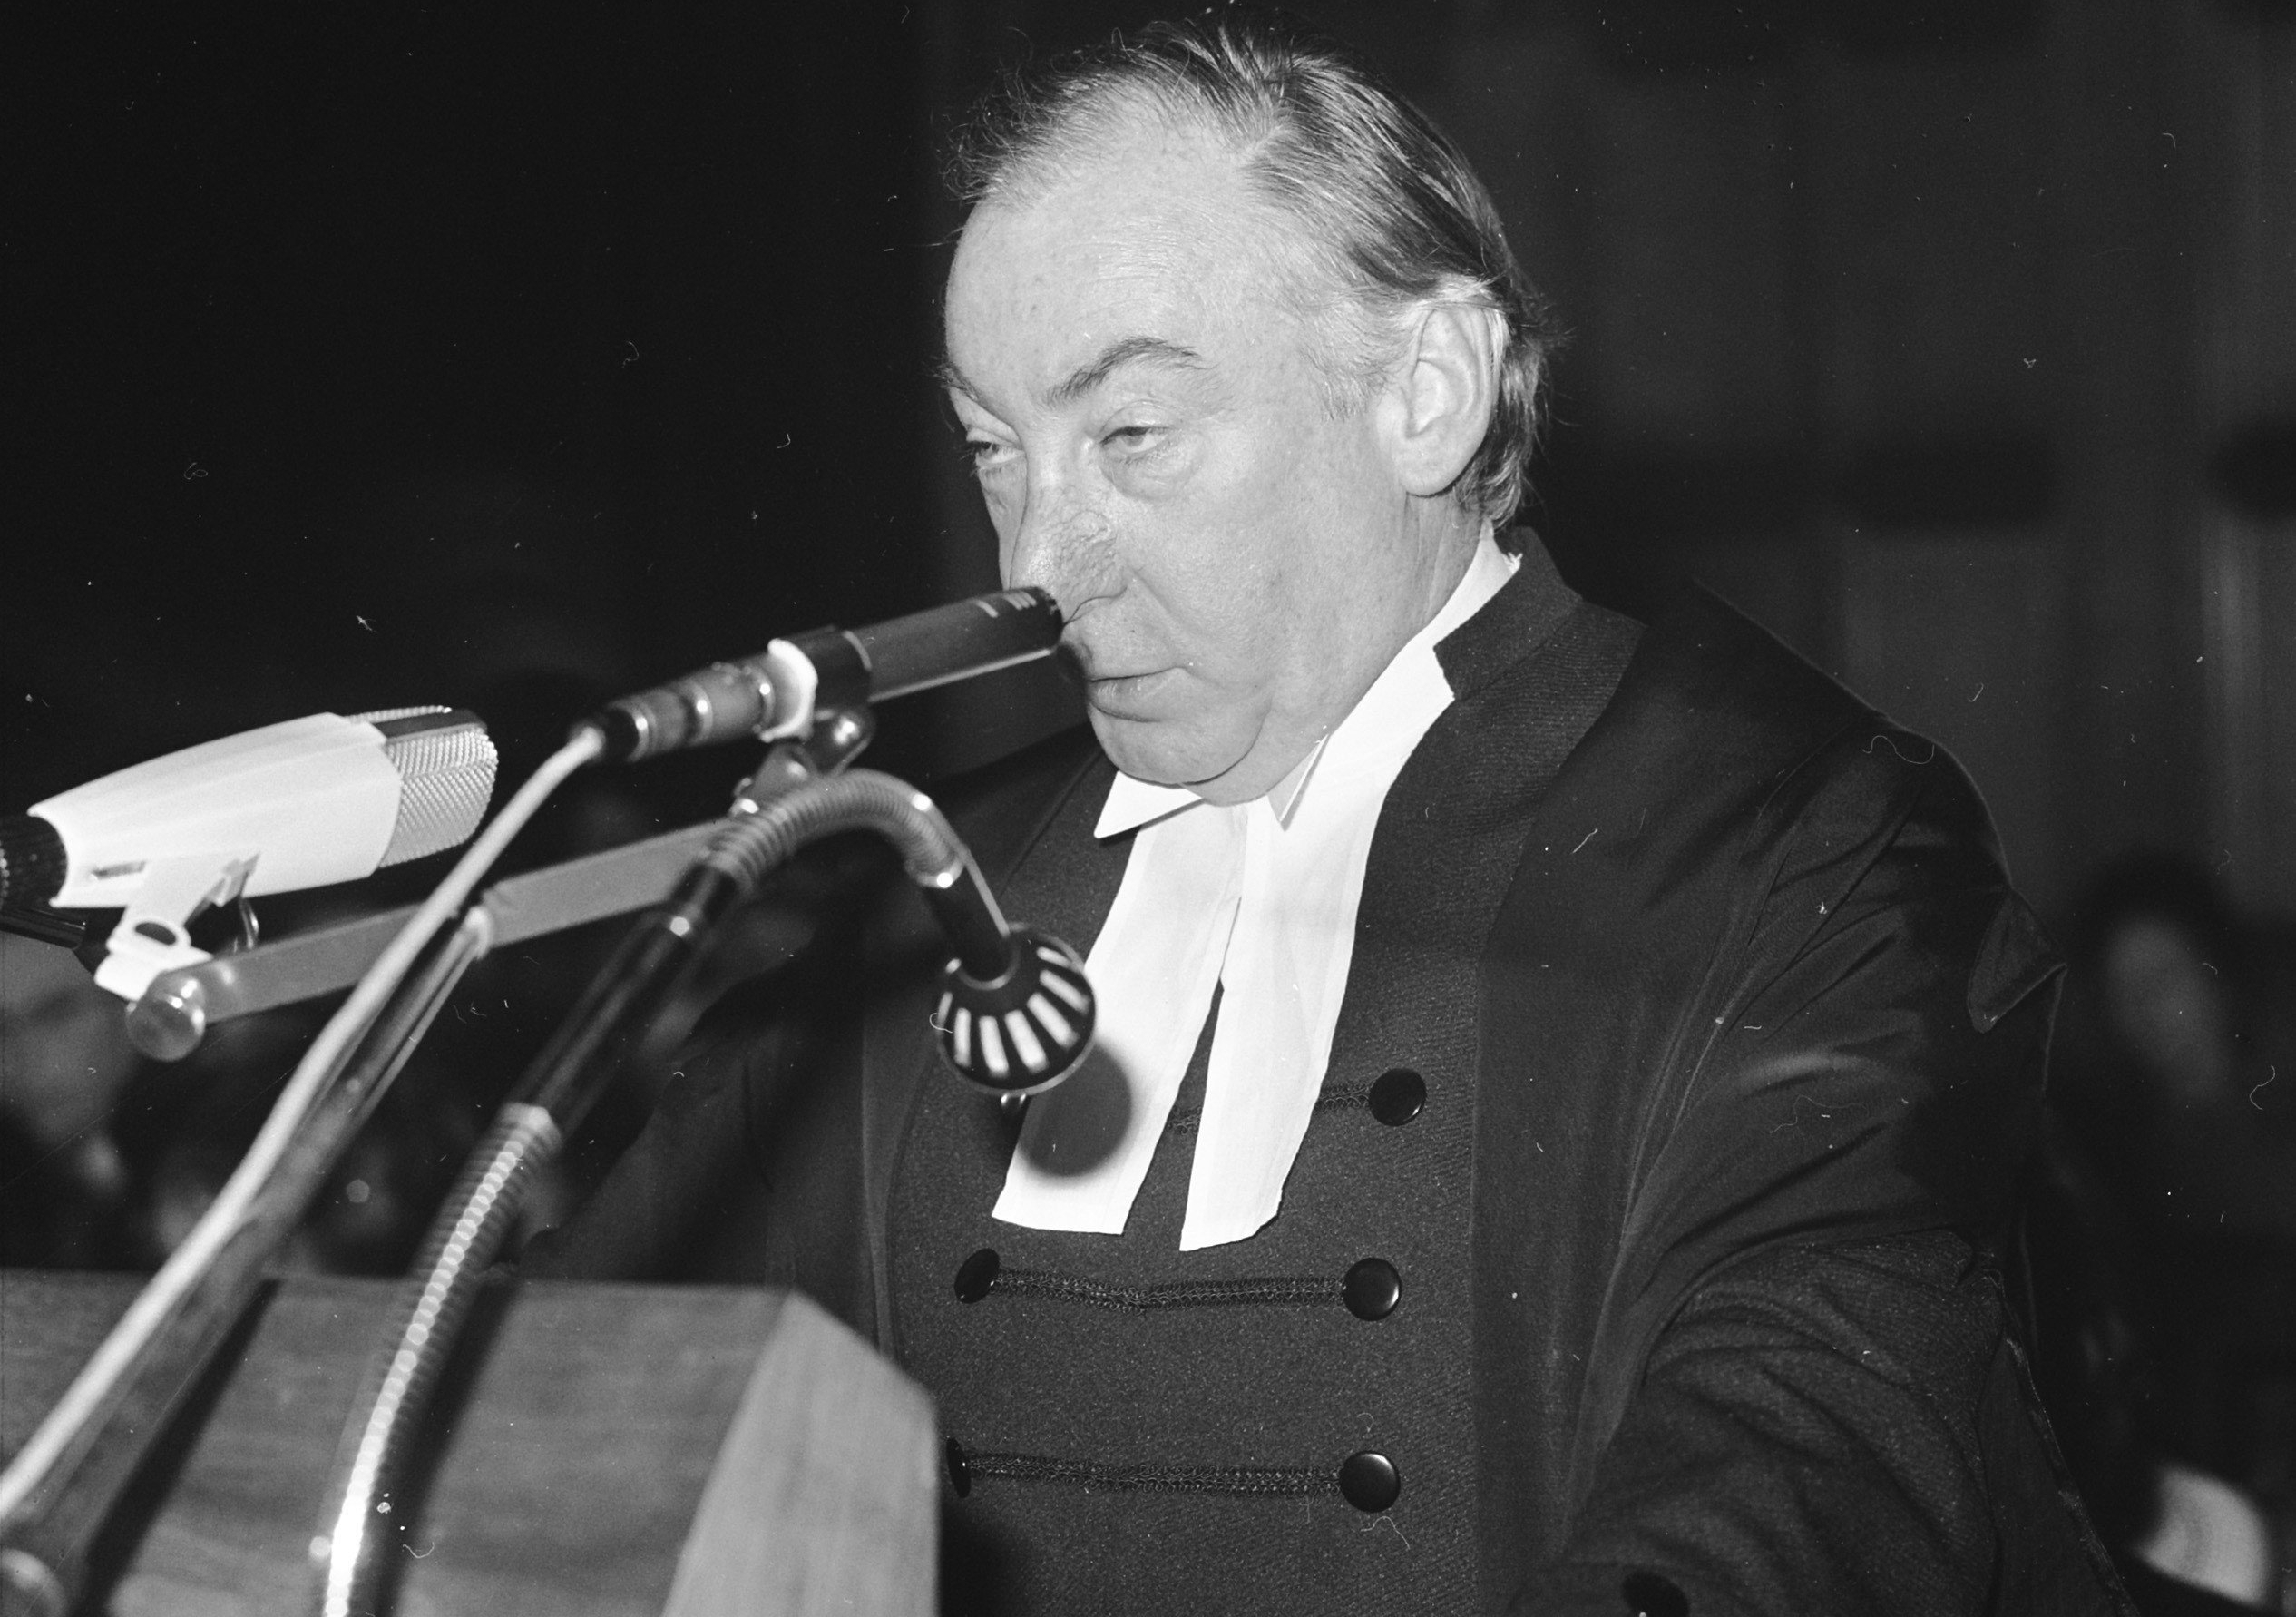 Lionel Murphy speaking at the International Court of Justice (21 May 1973), during the hearing of the Australian complaint about French nuclear test bombing. Photo: Rob Mieremet/GaHetNa (Nationaal Archief NL).